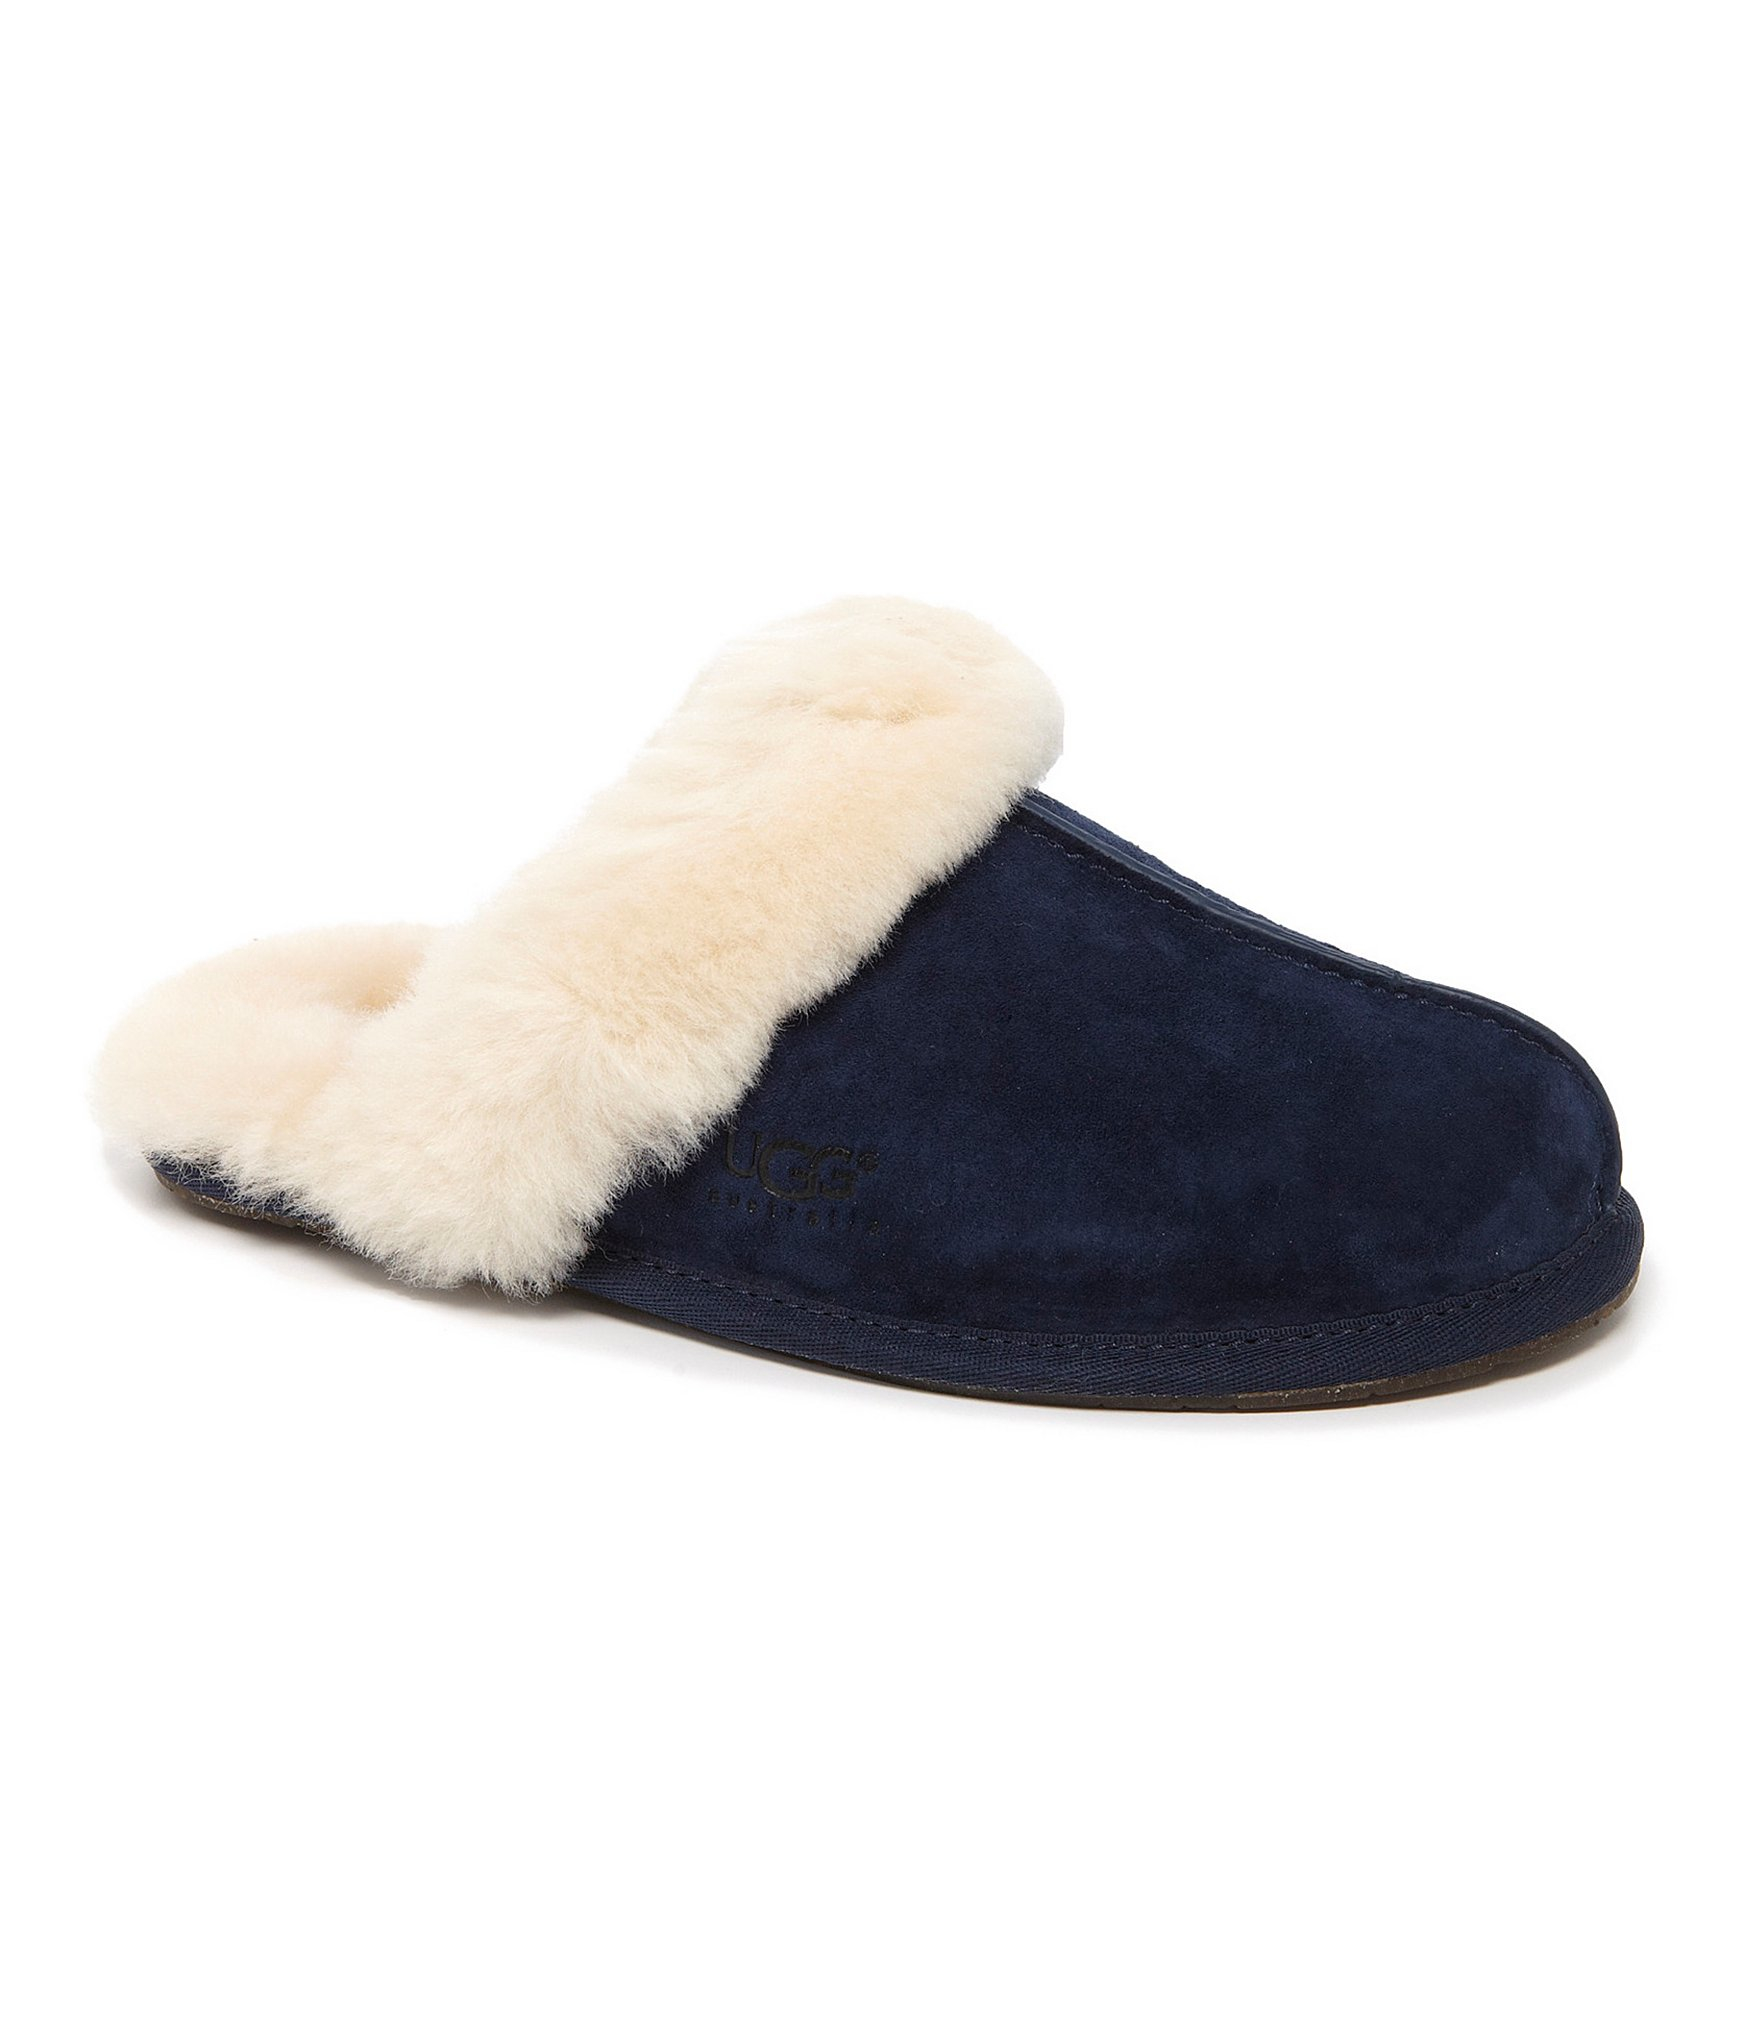 8393276003c Ugg Slippers Scuffette - cheap watches mgc-gas.com